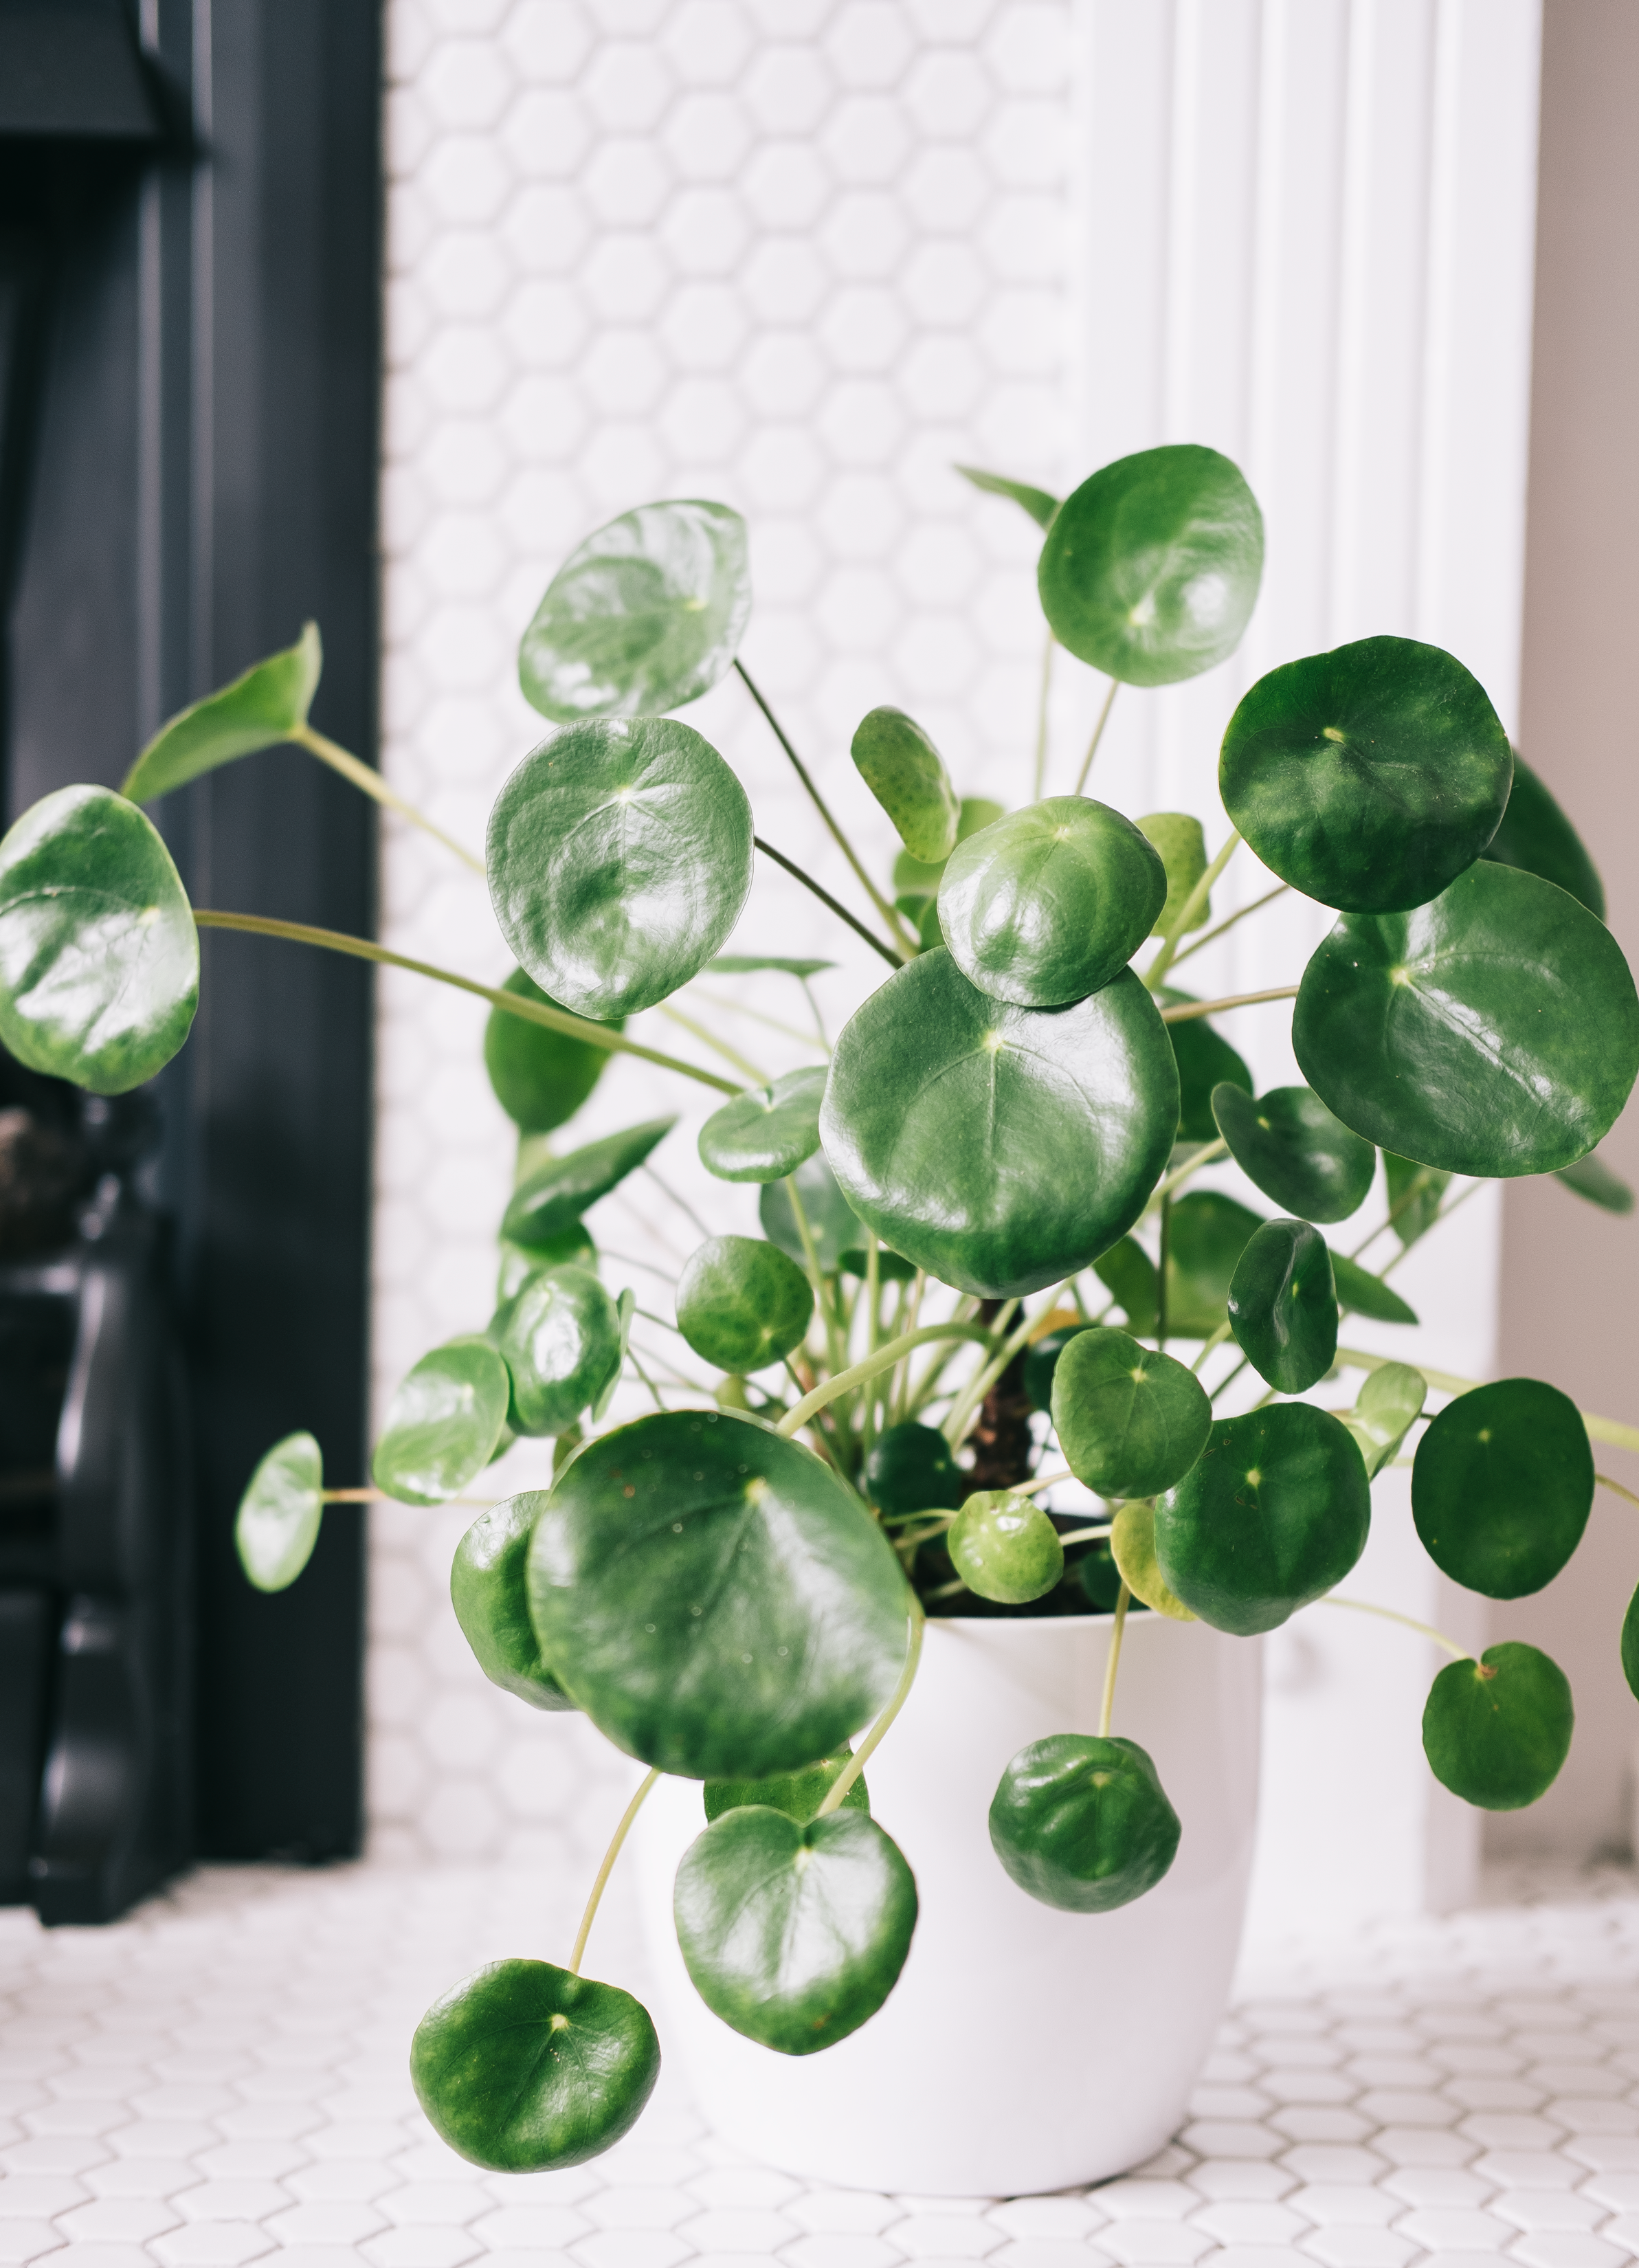 pilea peperomioides (chinese money plant) - I hunted for a pilea for months and then I spotted this one in a little plant shop pop up in Meadowhall and couldn't leave her behind. They're often known as Chinese Money Plants and there's a myth that if you pop a coin into the soil the plant will bring you fortune. Mine is very leggy which I absolutely love as I'm hoping to be able to propagate a couple of leaves as I cannot get enough of these beautiful plants and their super shiny leaves. Pilea are typically very easy to care for as long as they've got a good amount of light and are regularly watered, you do have to be very careful of root rot though. You can use a liquid fertiliser once a month to help encourage new growth but I've not done that with mine as she's already leggy enough and growing well without.